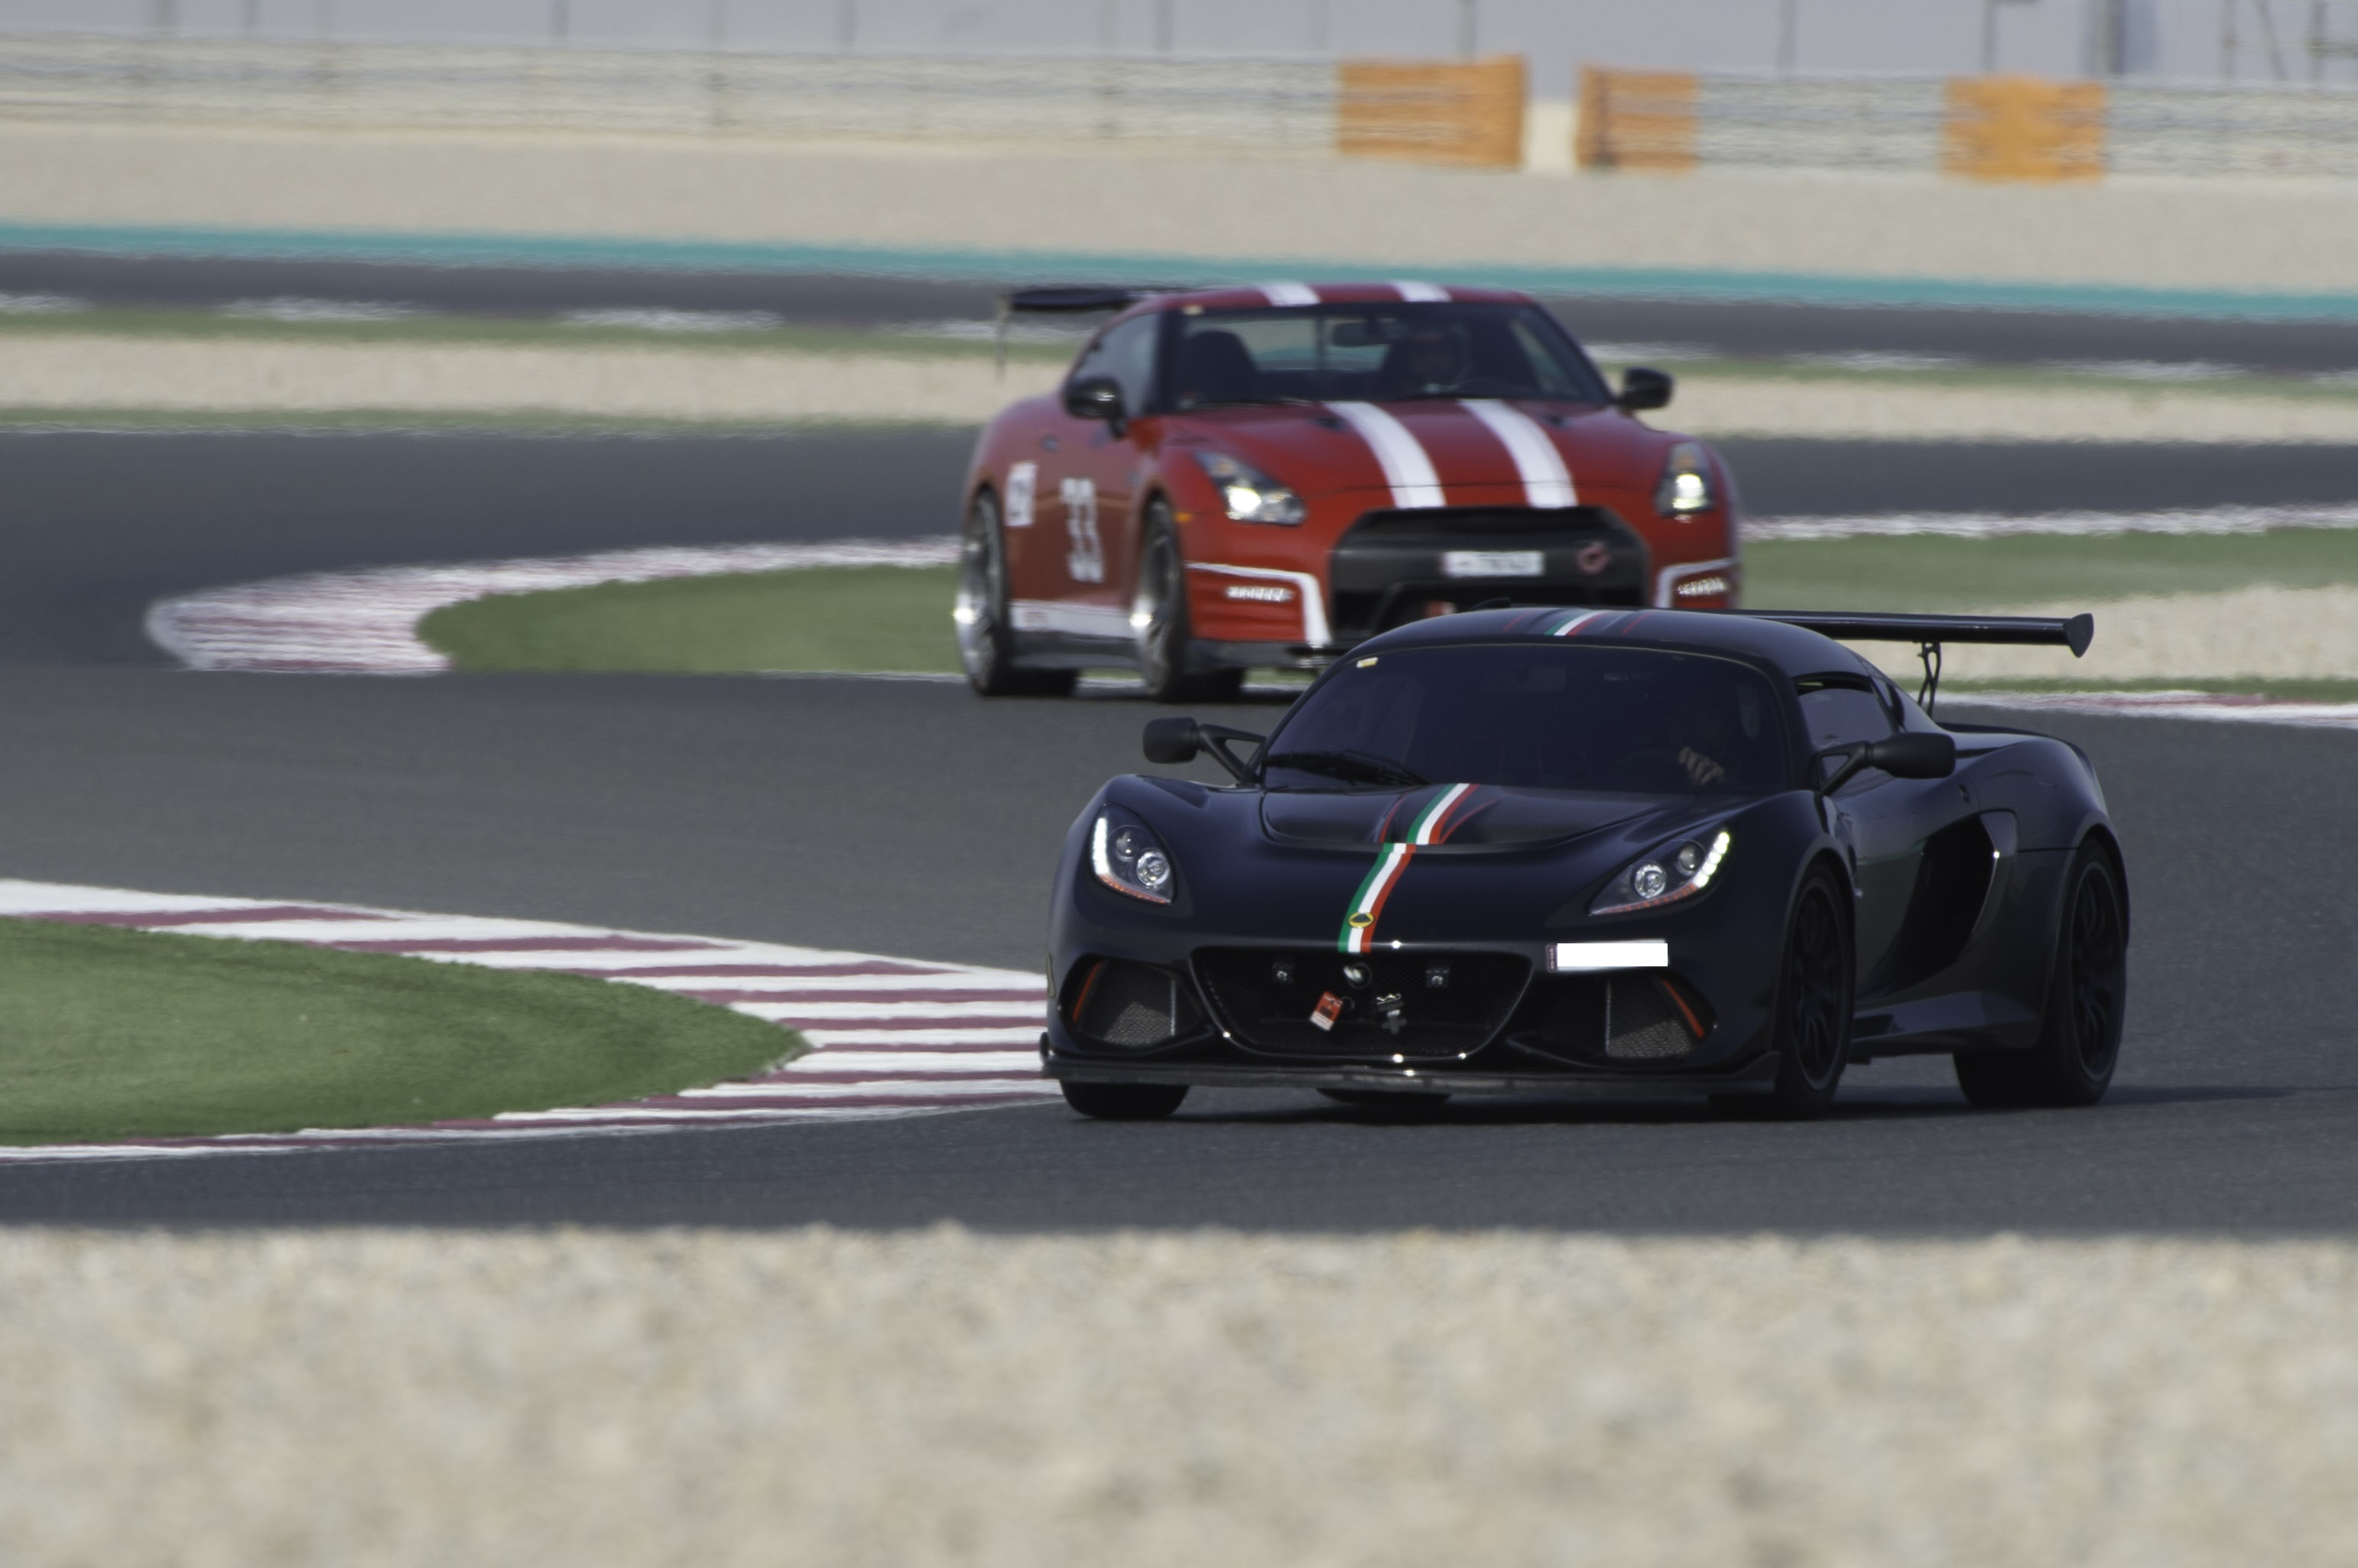 Track Days are back at Losail Circuit Sports Club